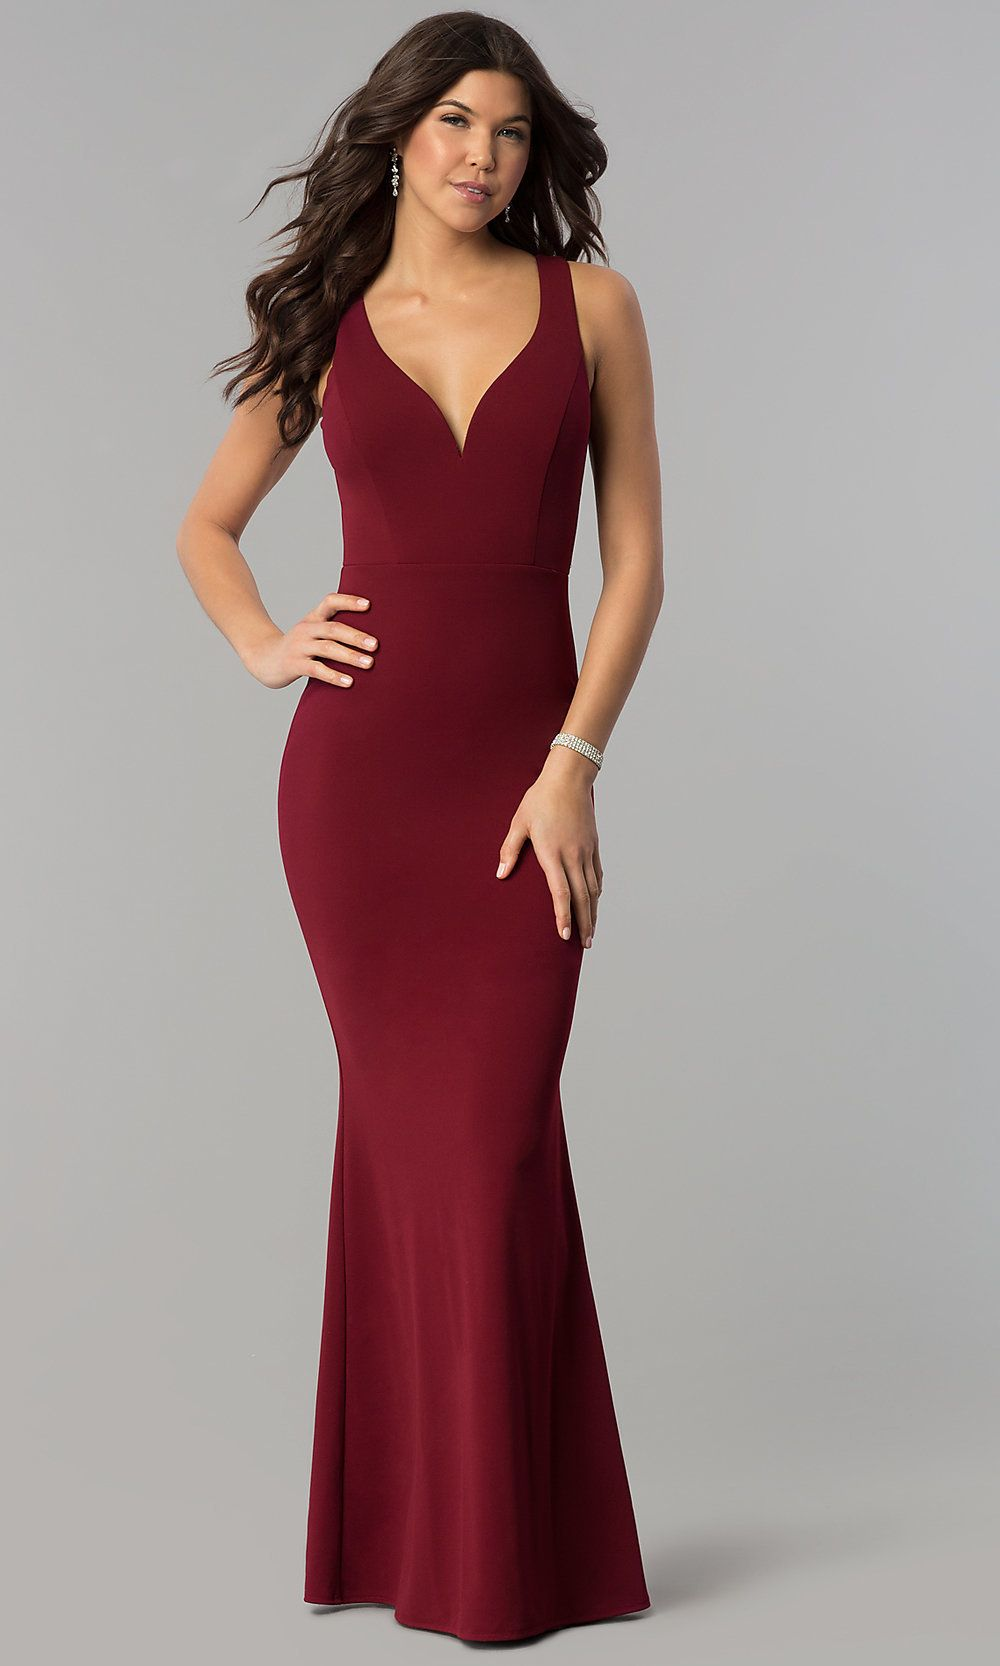 072e006622ee Long Mermaid Prom Dress with Decolletage V-Neckline in 2019 | Black ...